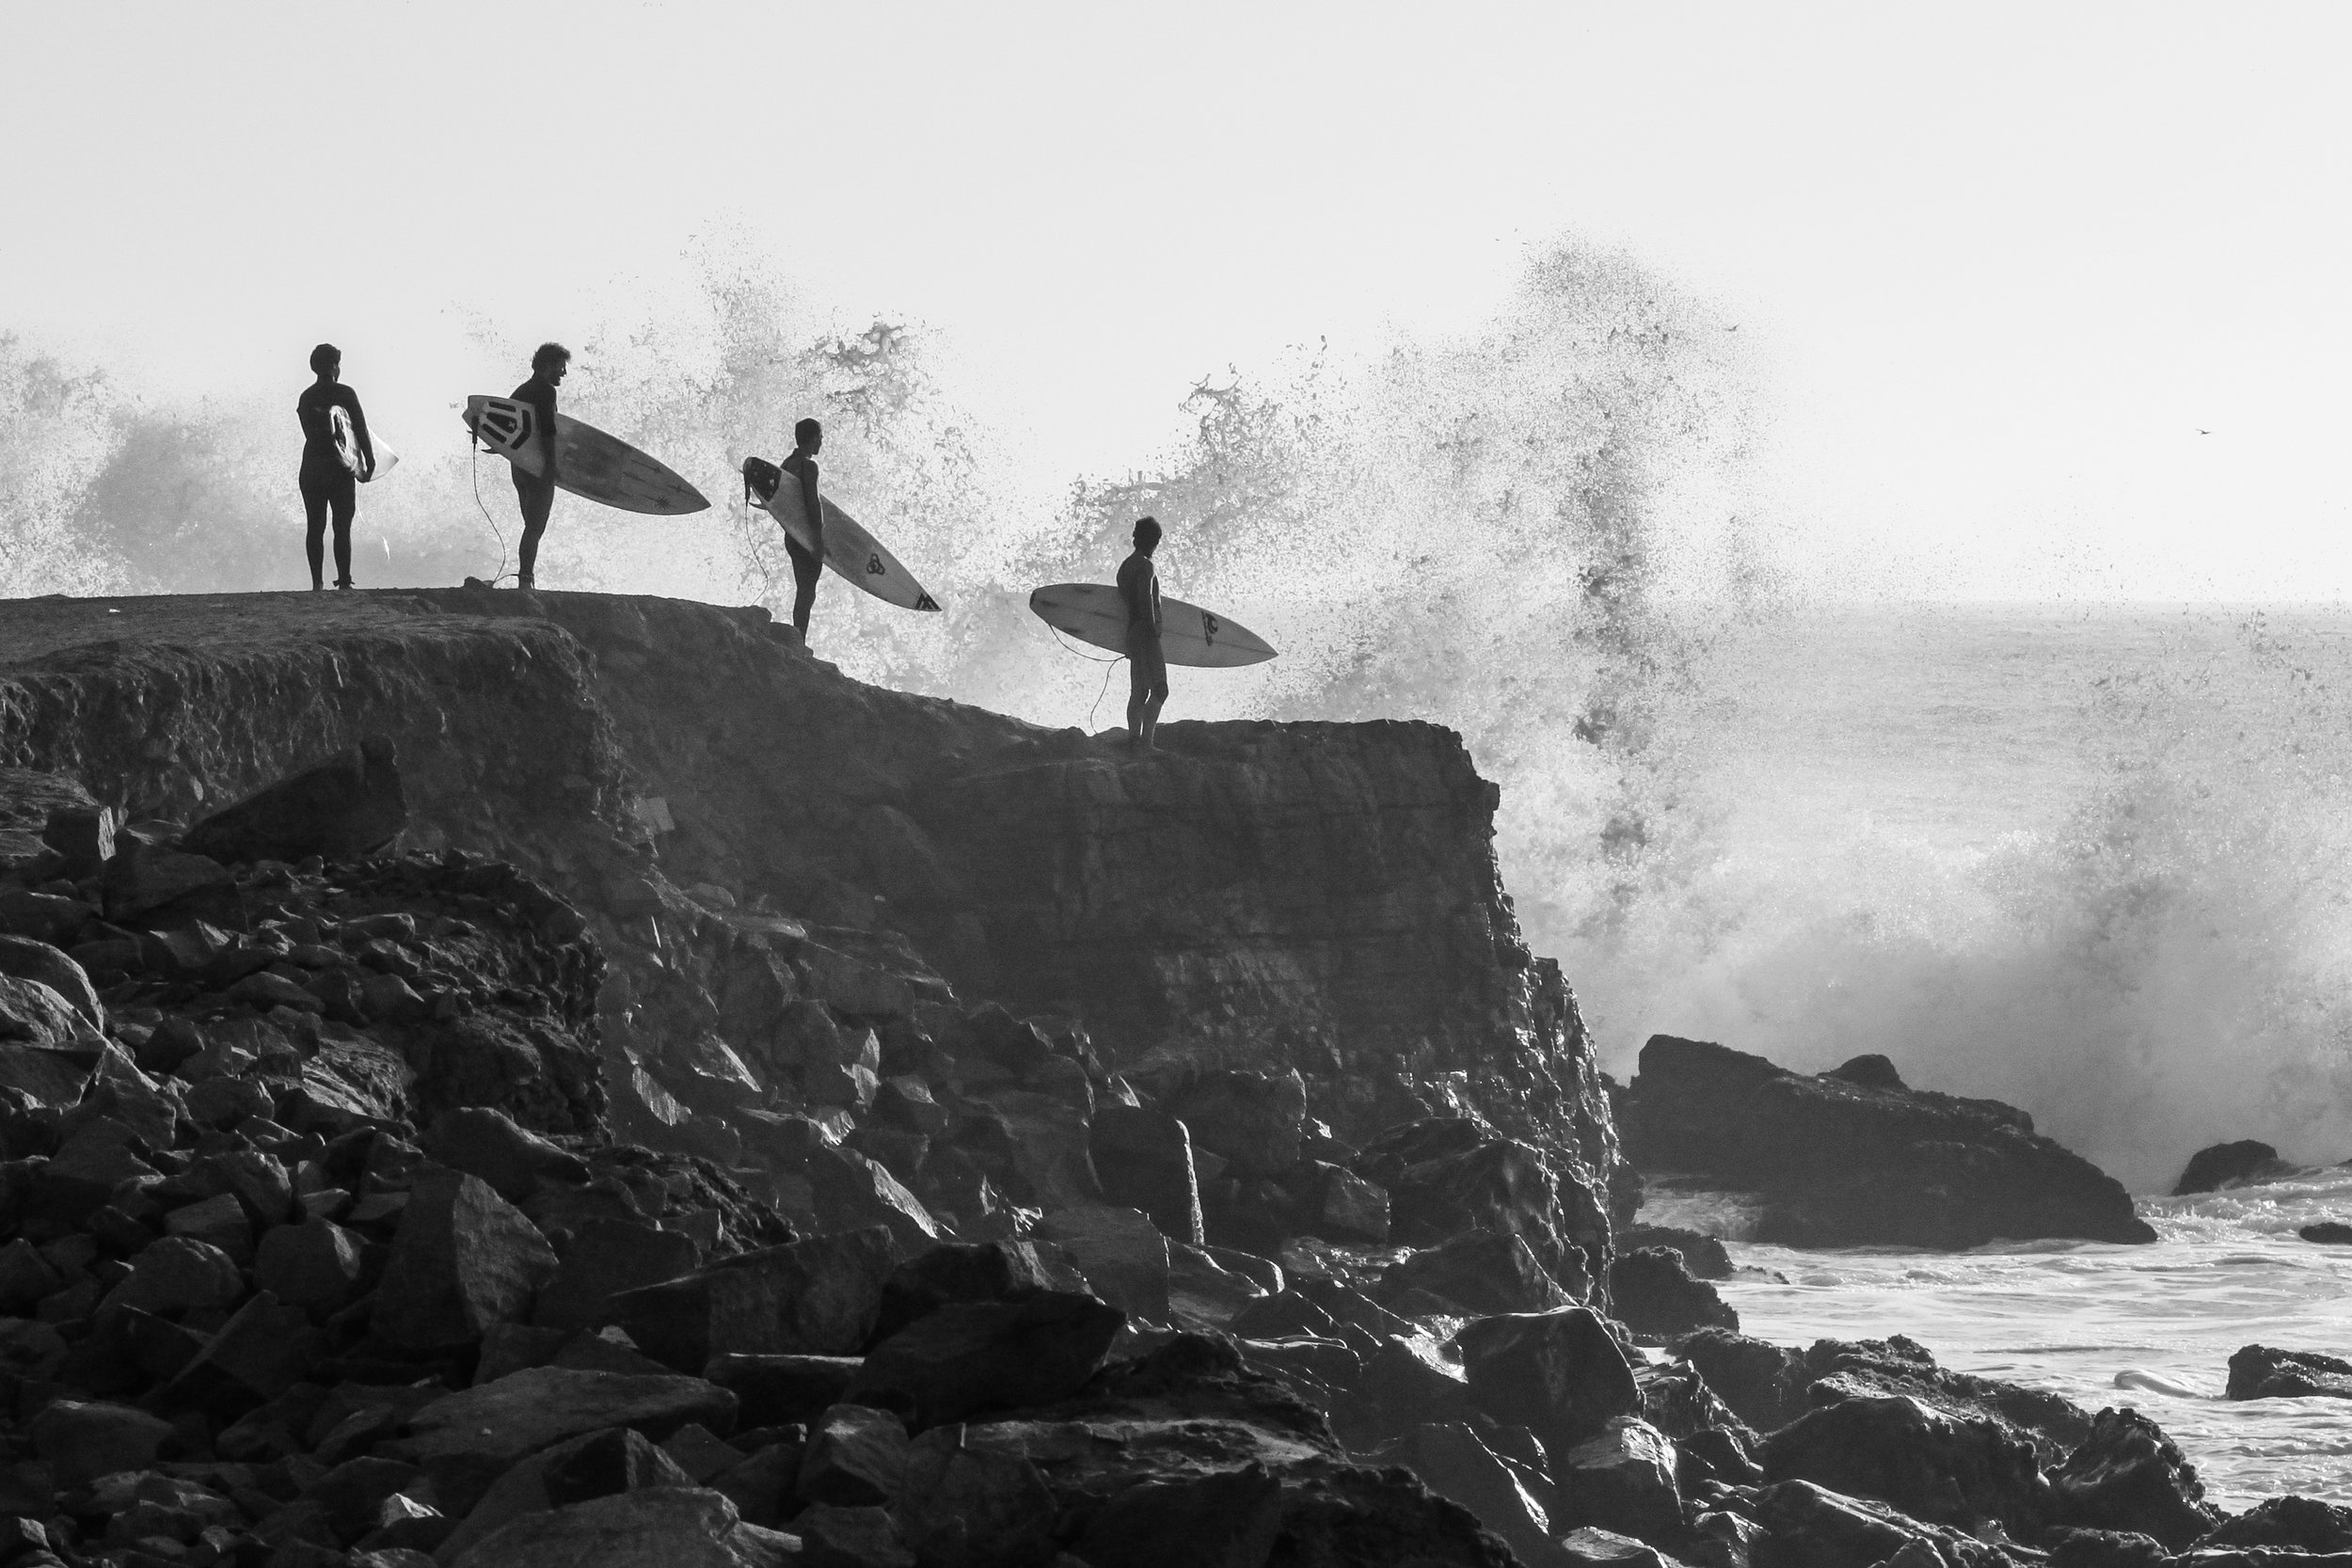 Surfers in Peru in black and white.